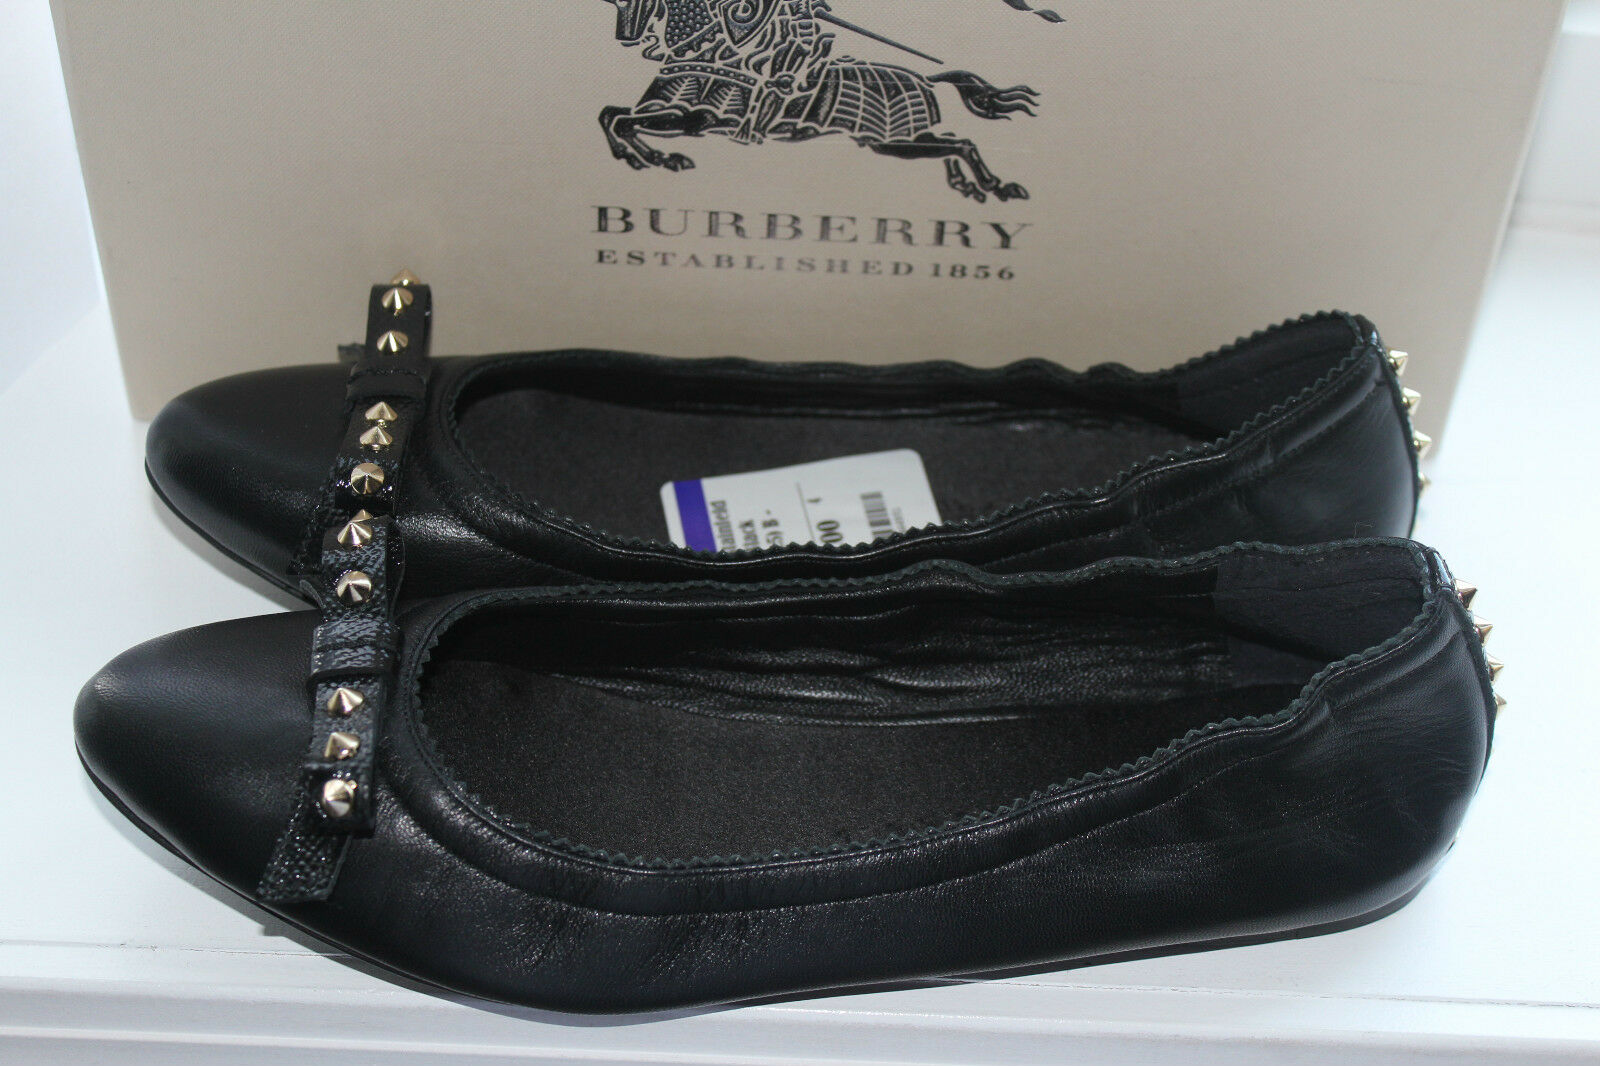 BURBERRY BURBERRY BURBERRY STAINFELD 3871792 BLACK LEATHER   8.5us  395 1ef3f9